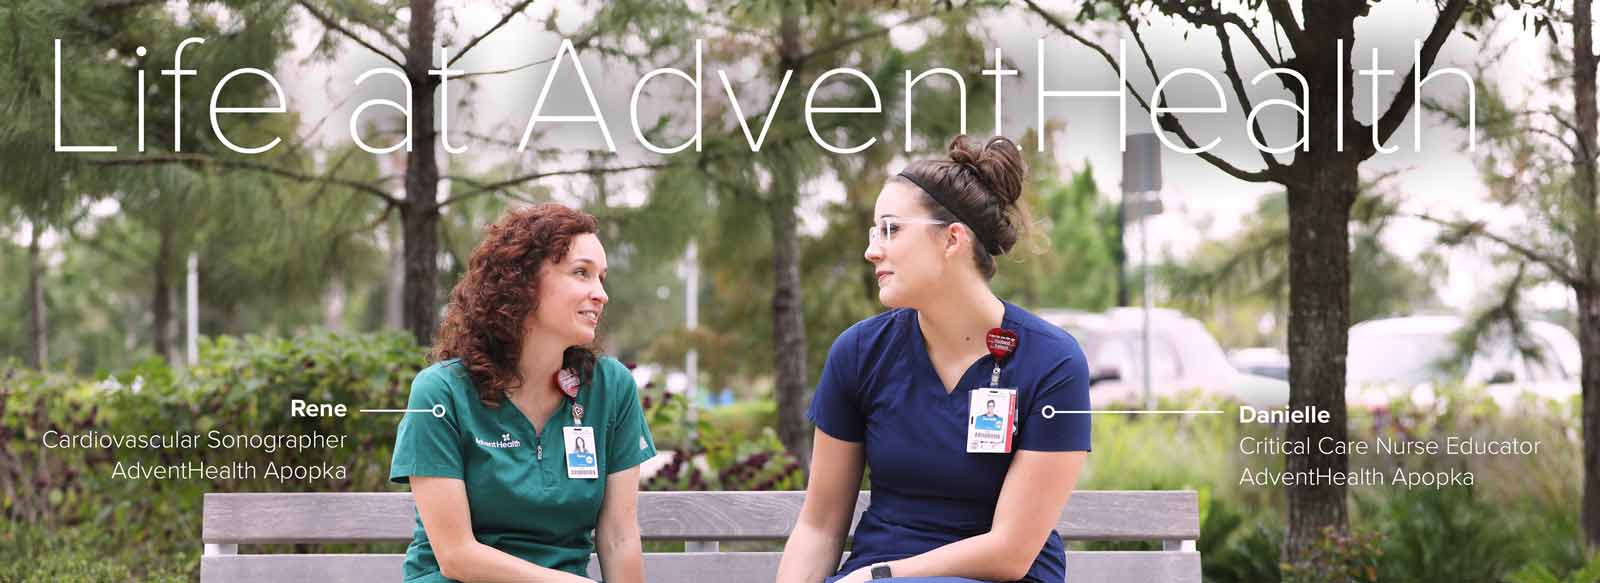 Life-at-AdventHealth-Banner-2